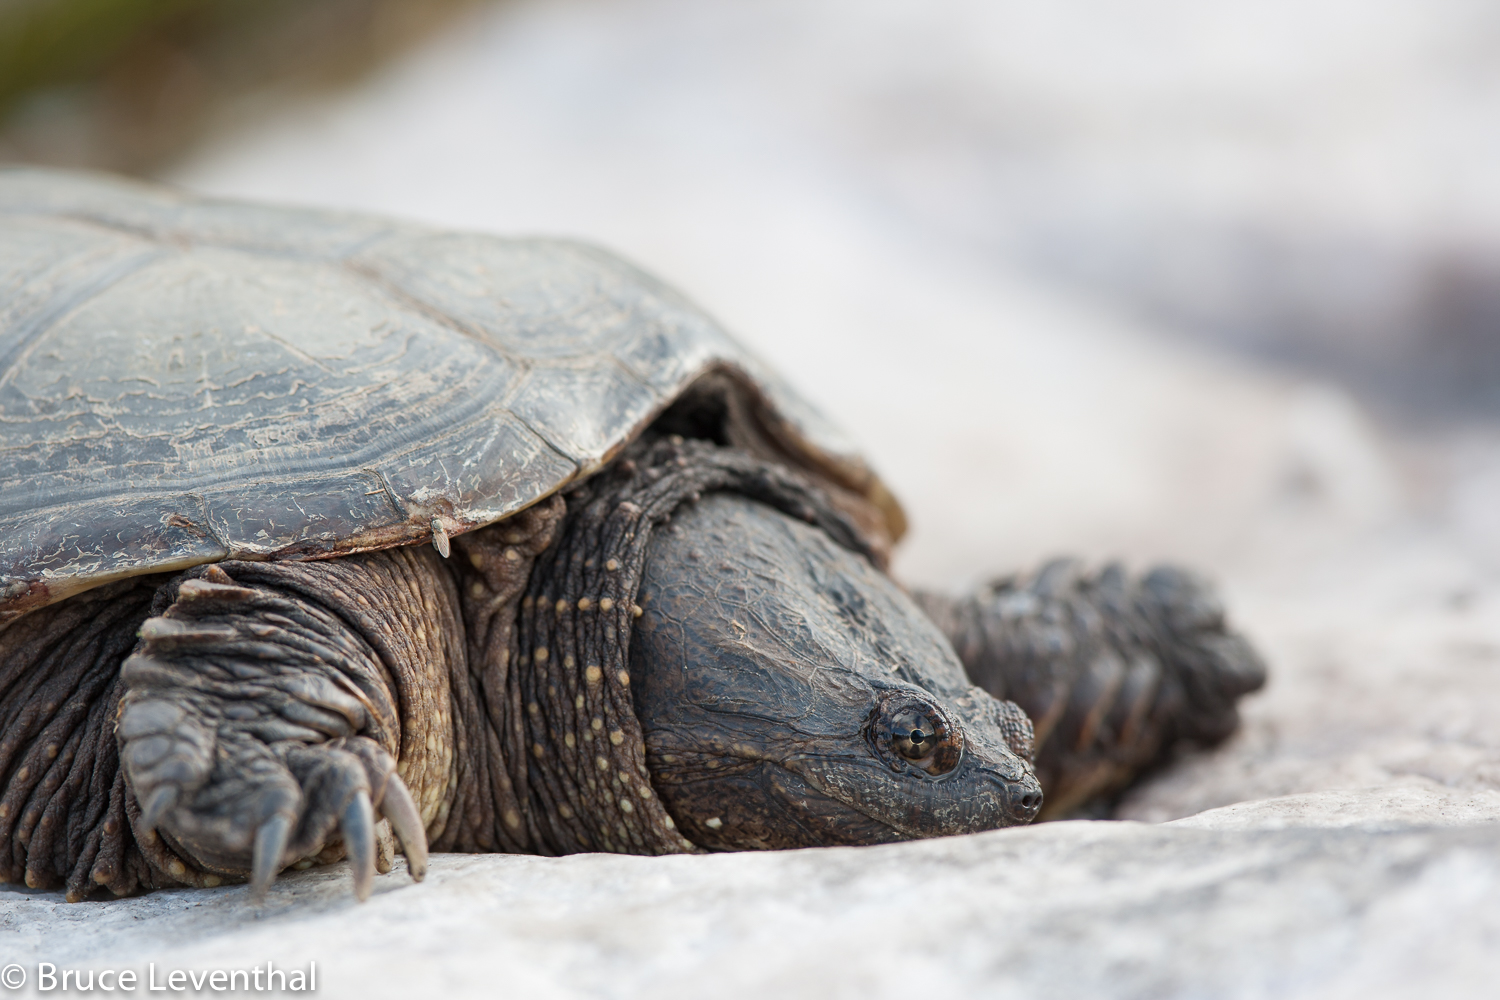 Portrait of a Snapping Turtle - Killarney Provincial Park, Ontario  Canon 1D mark III + Canon 300mm f2.8L IS